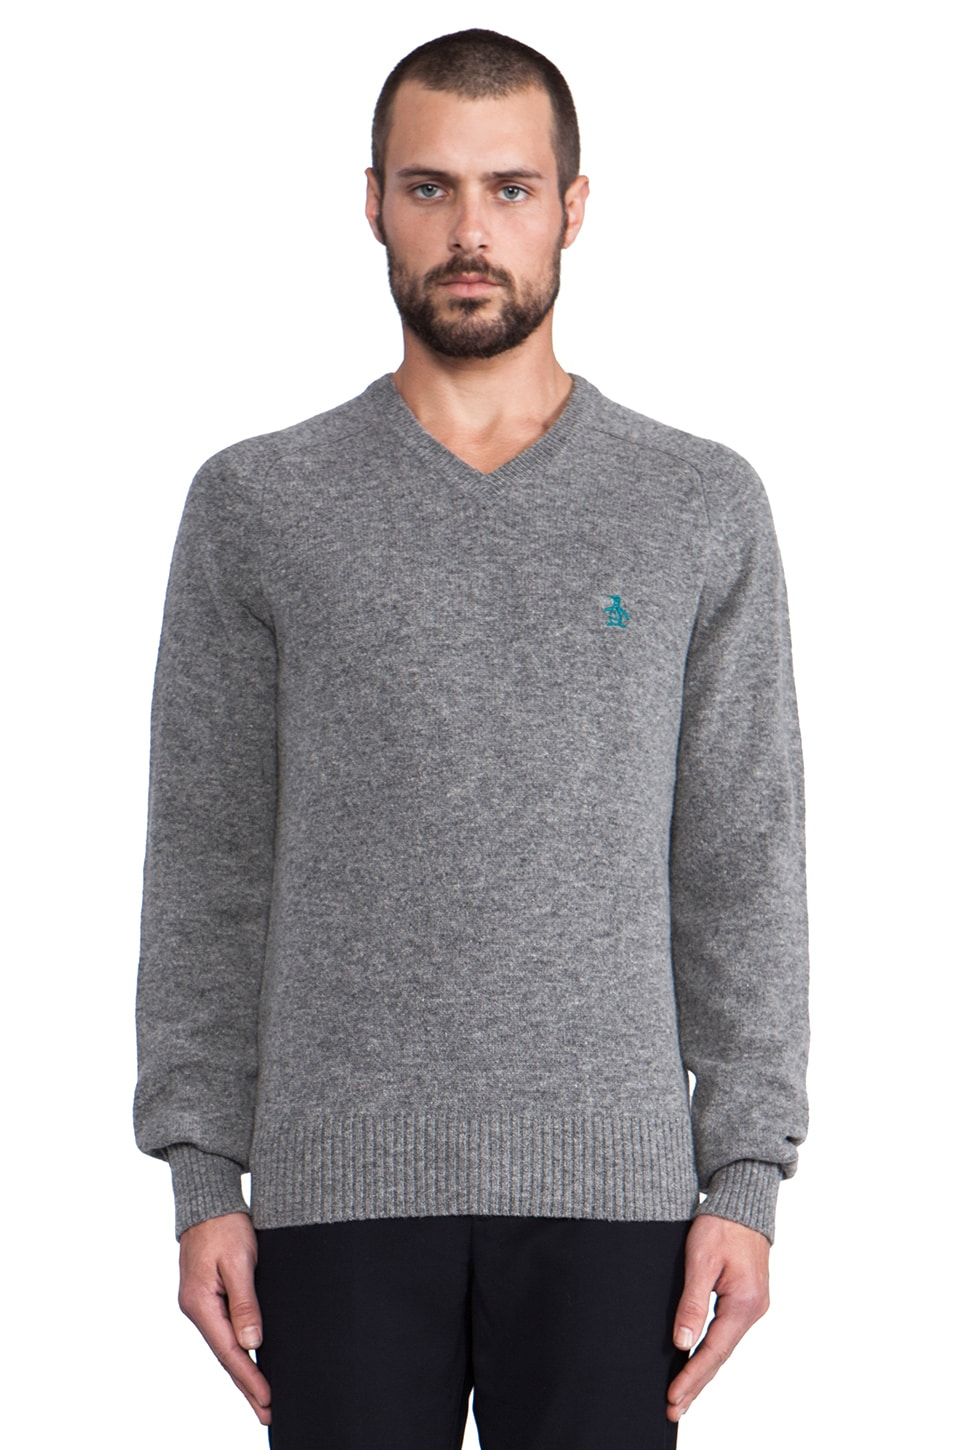 Penguin V Neck Sweater in Dark Steel Heather